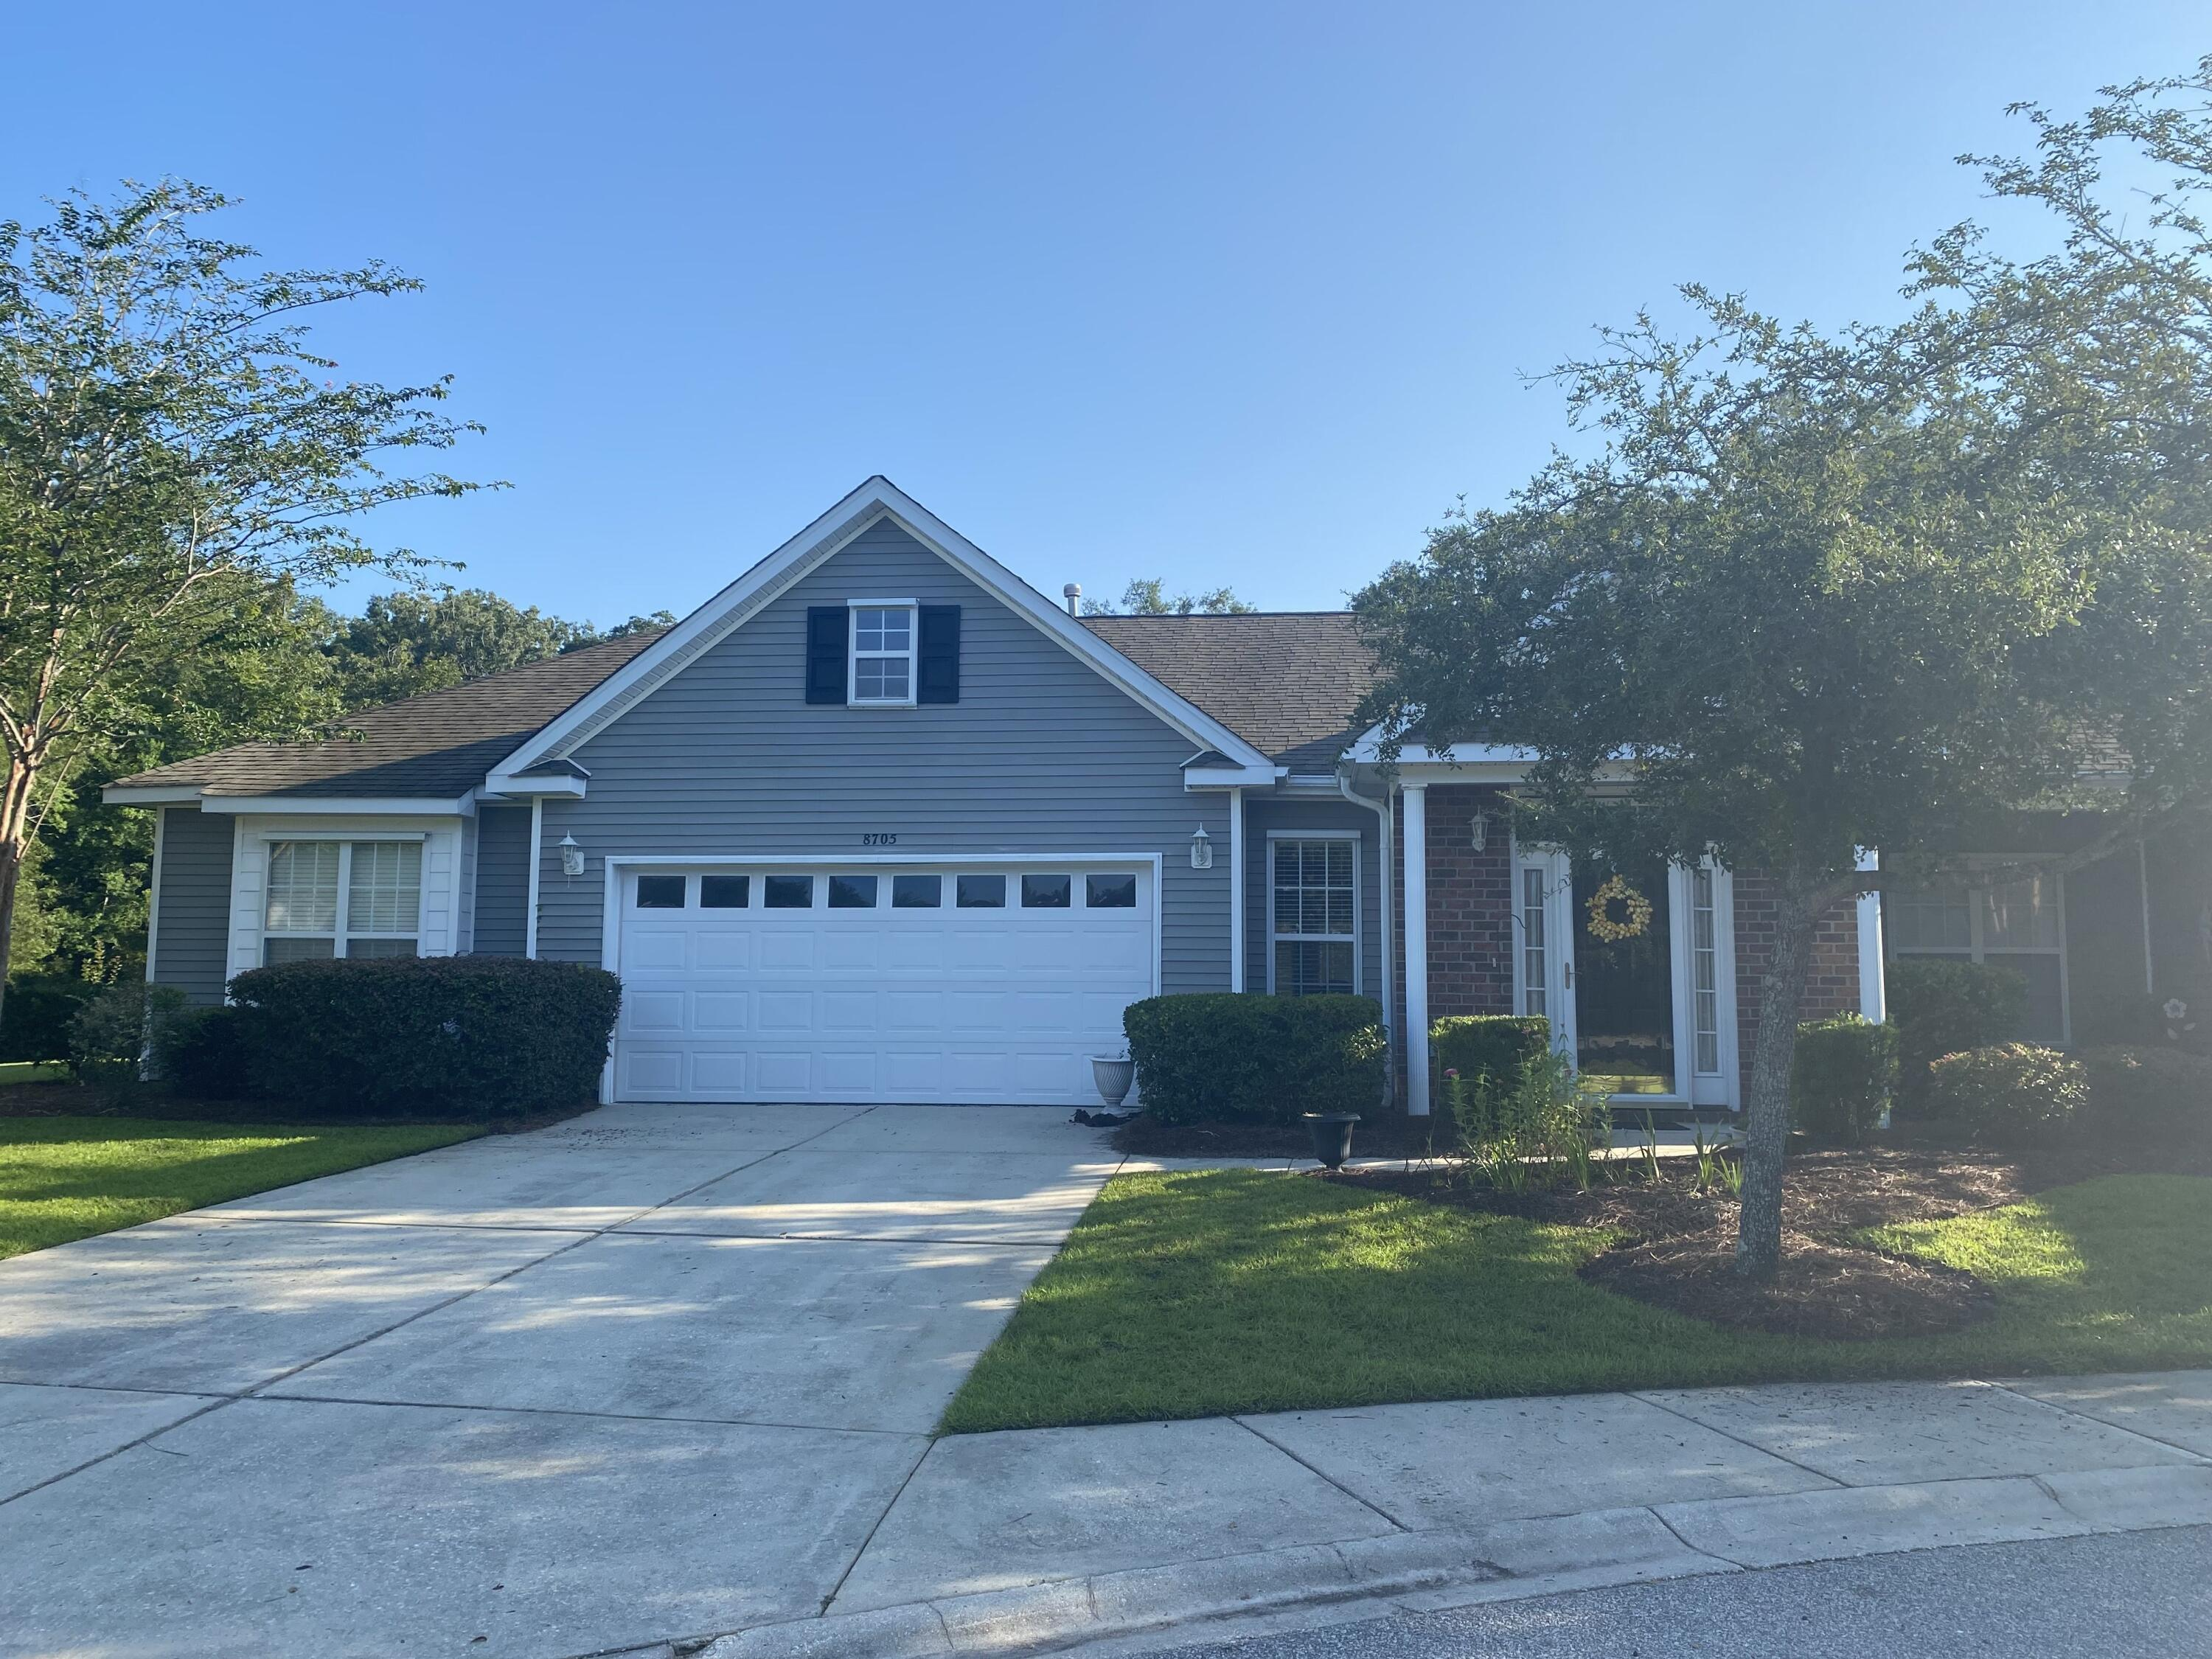 Coosaw Commons Homes For Sale - 8705 Grassy Oak, North Charleston, SC - 0